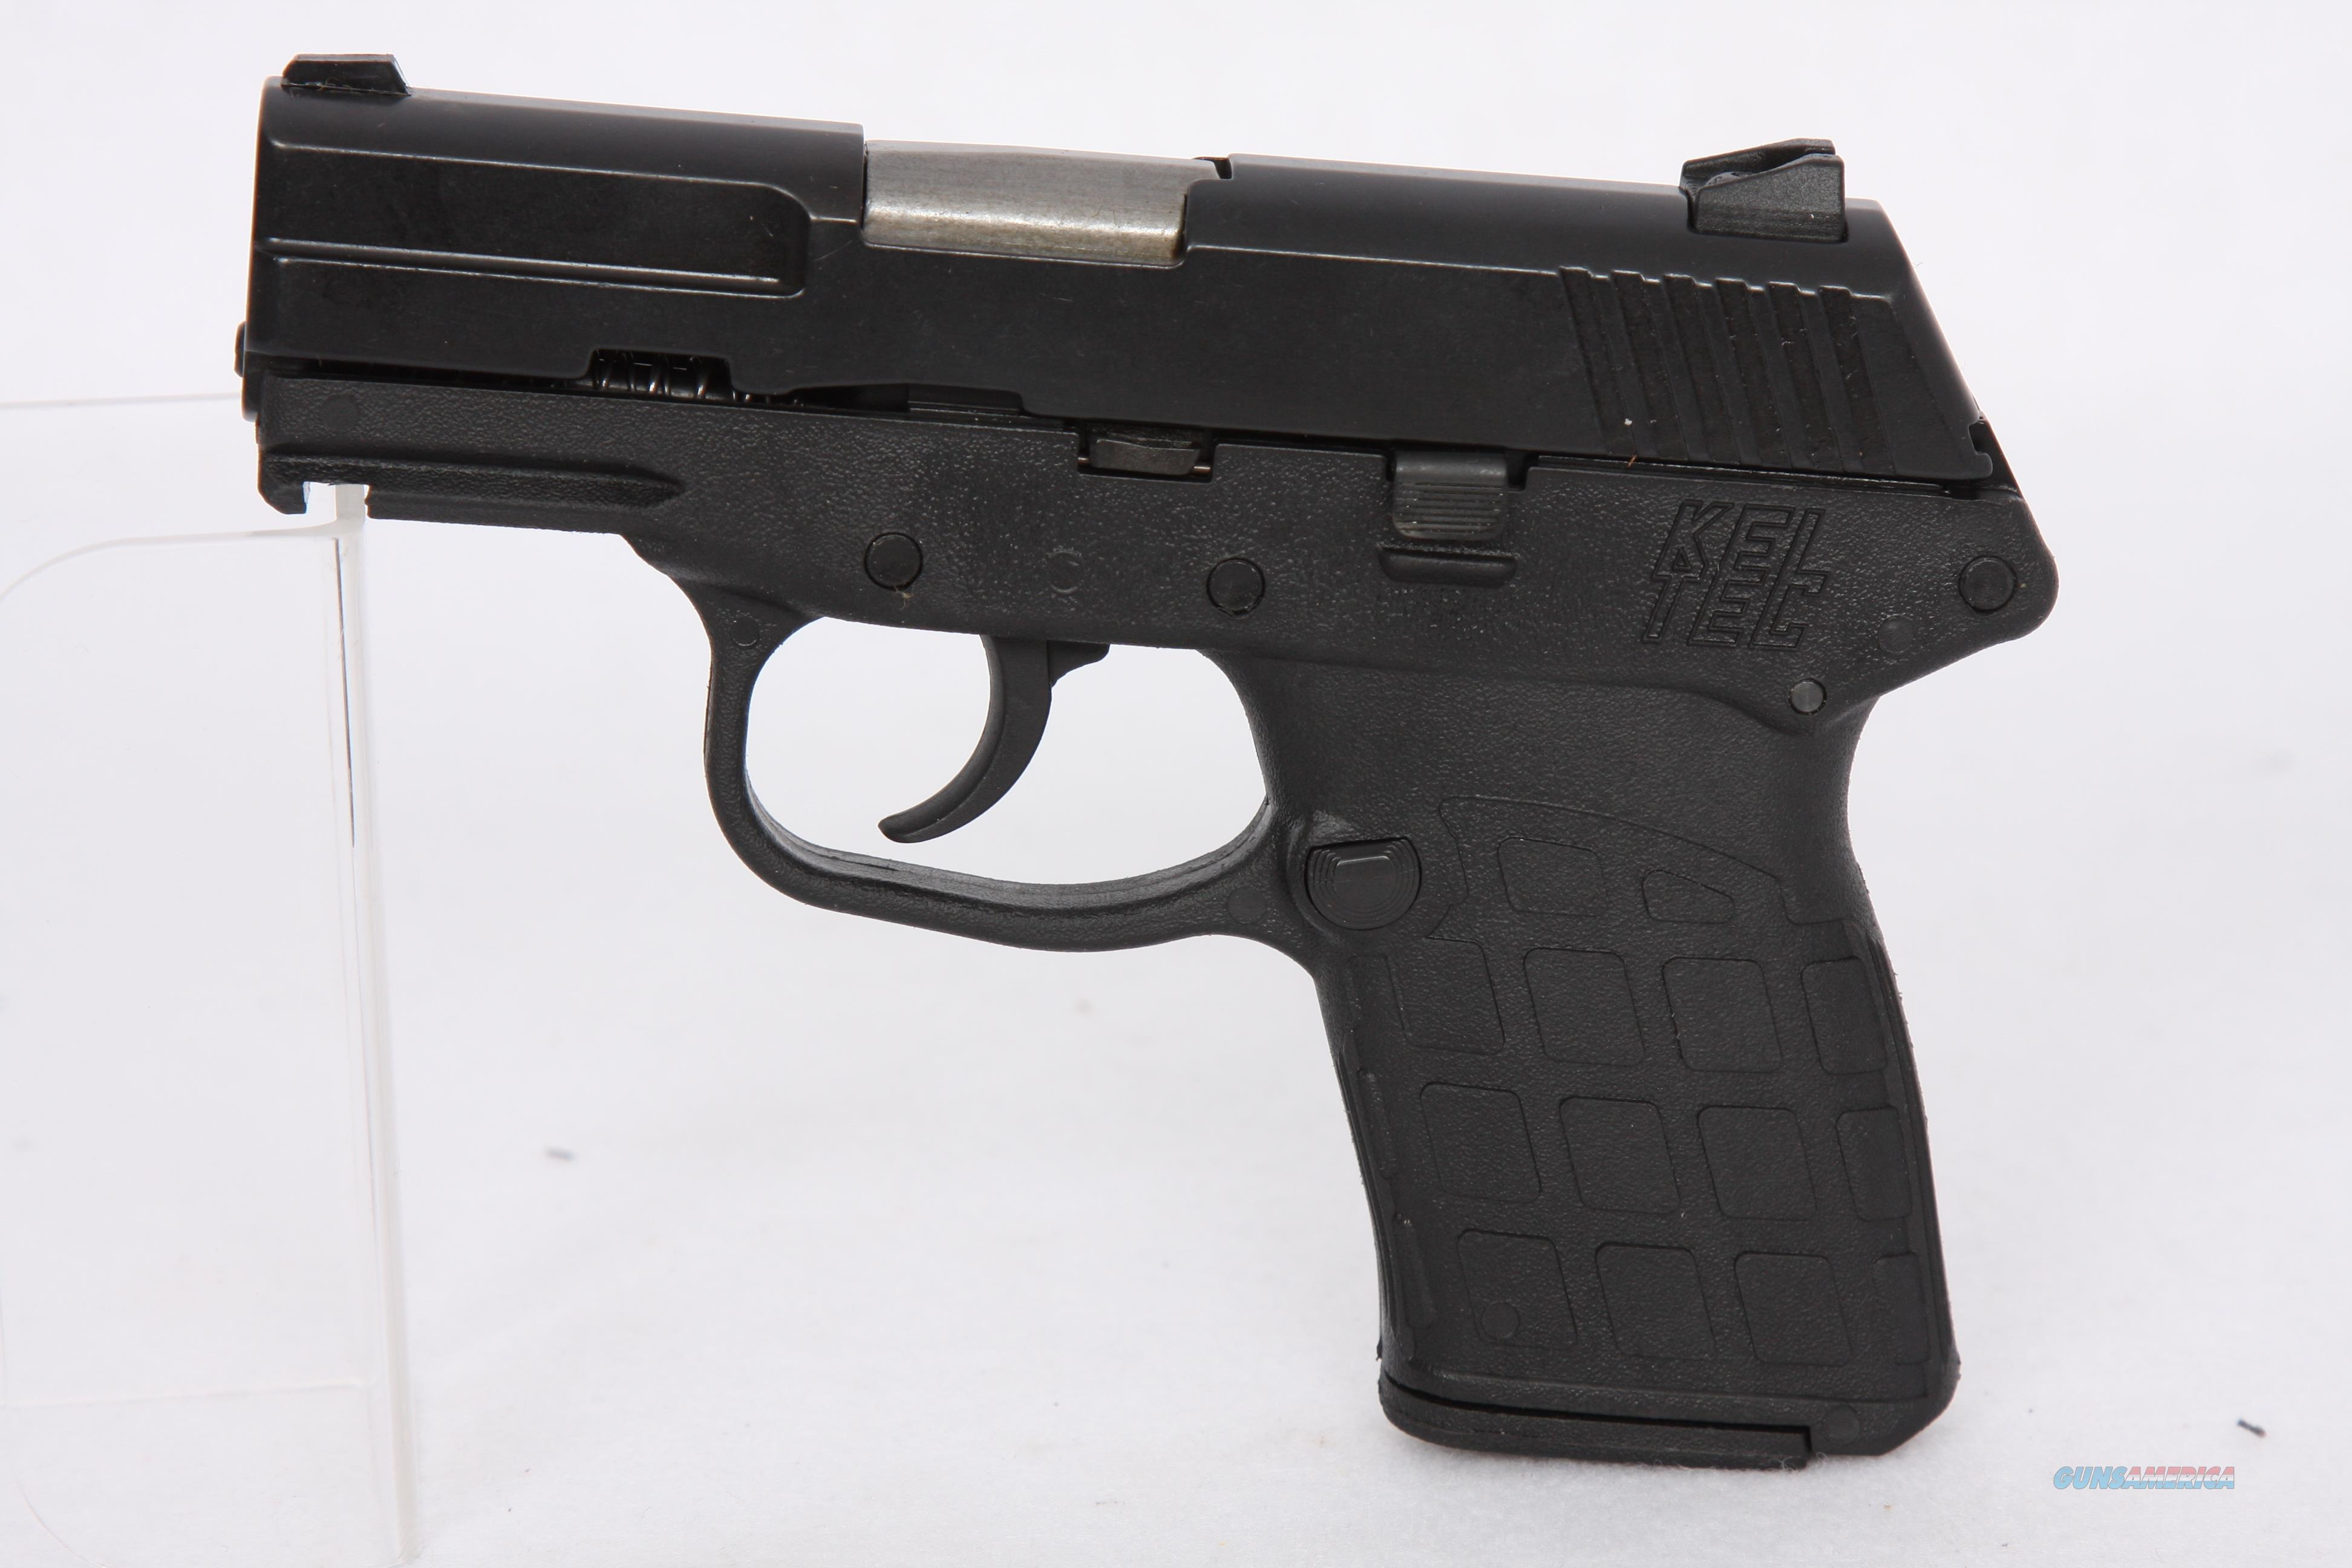 Kel-Tec PF-9 9mm  Guns > Pistols > Kel-Tec Pistols > Pocket Pistol Type